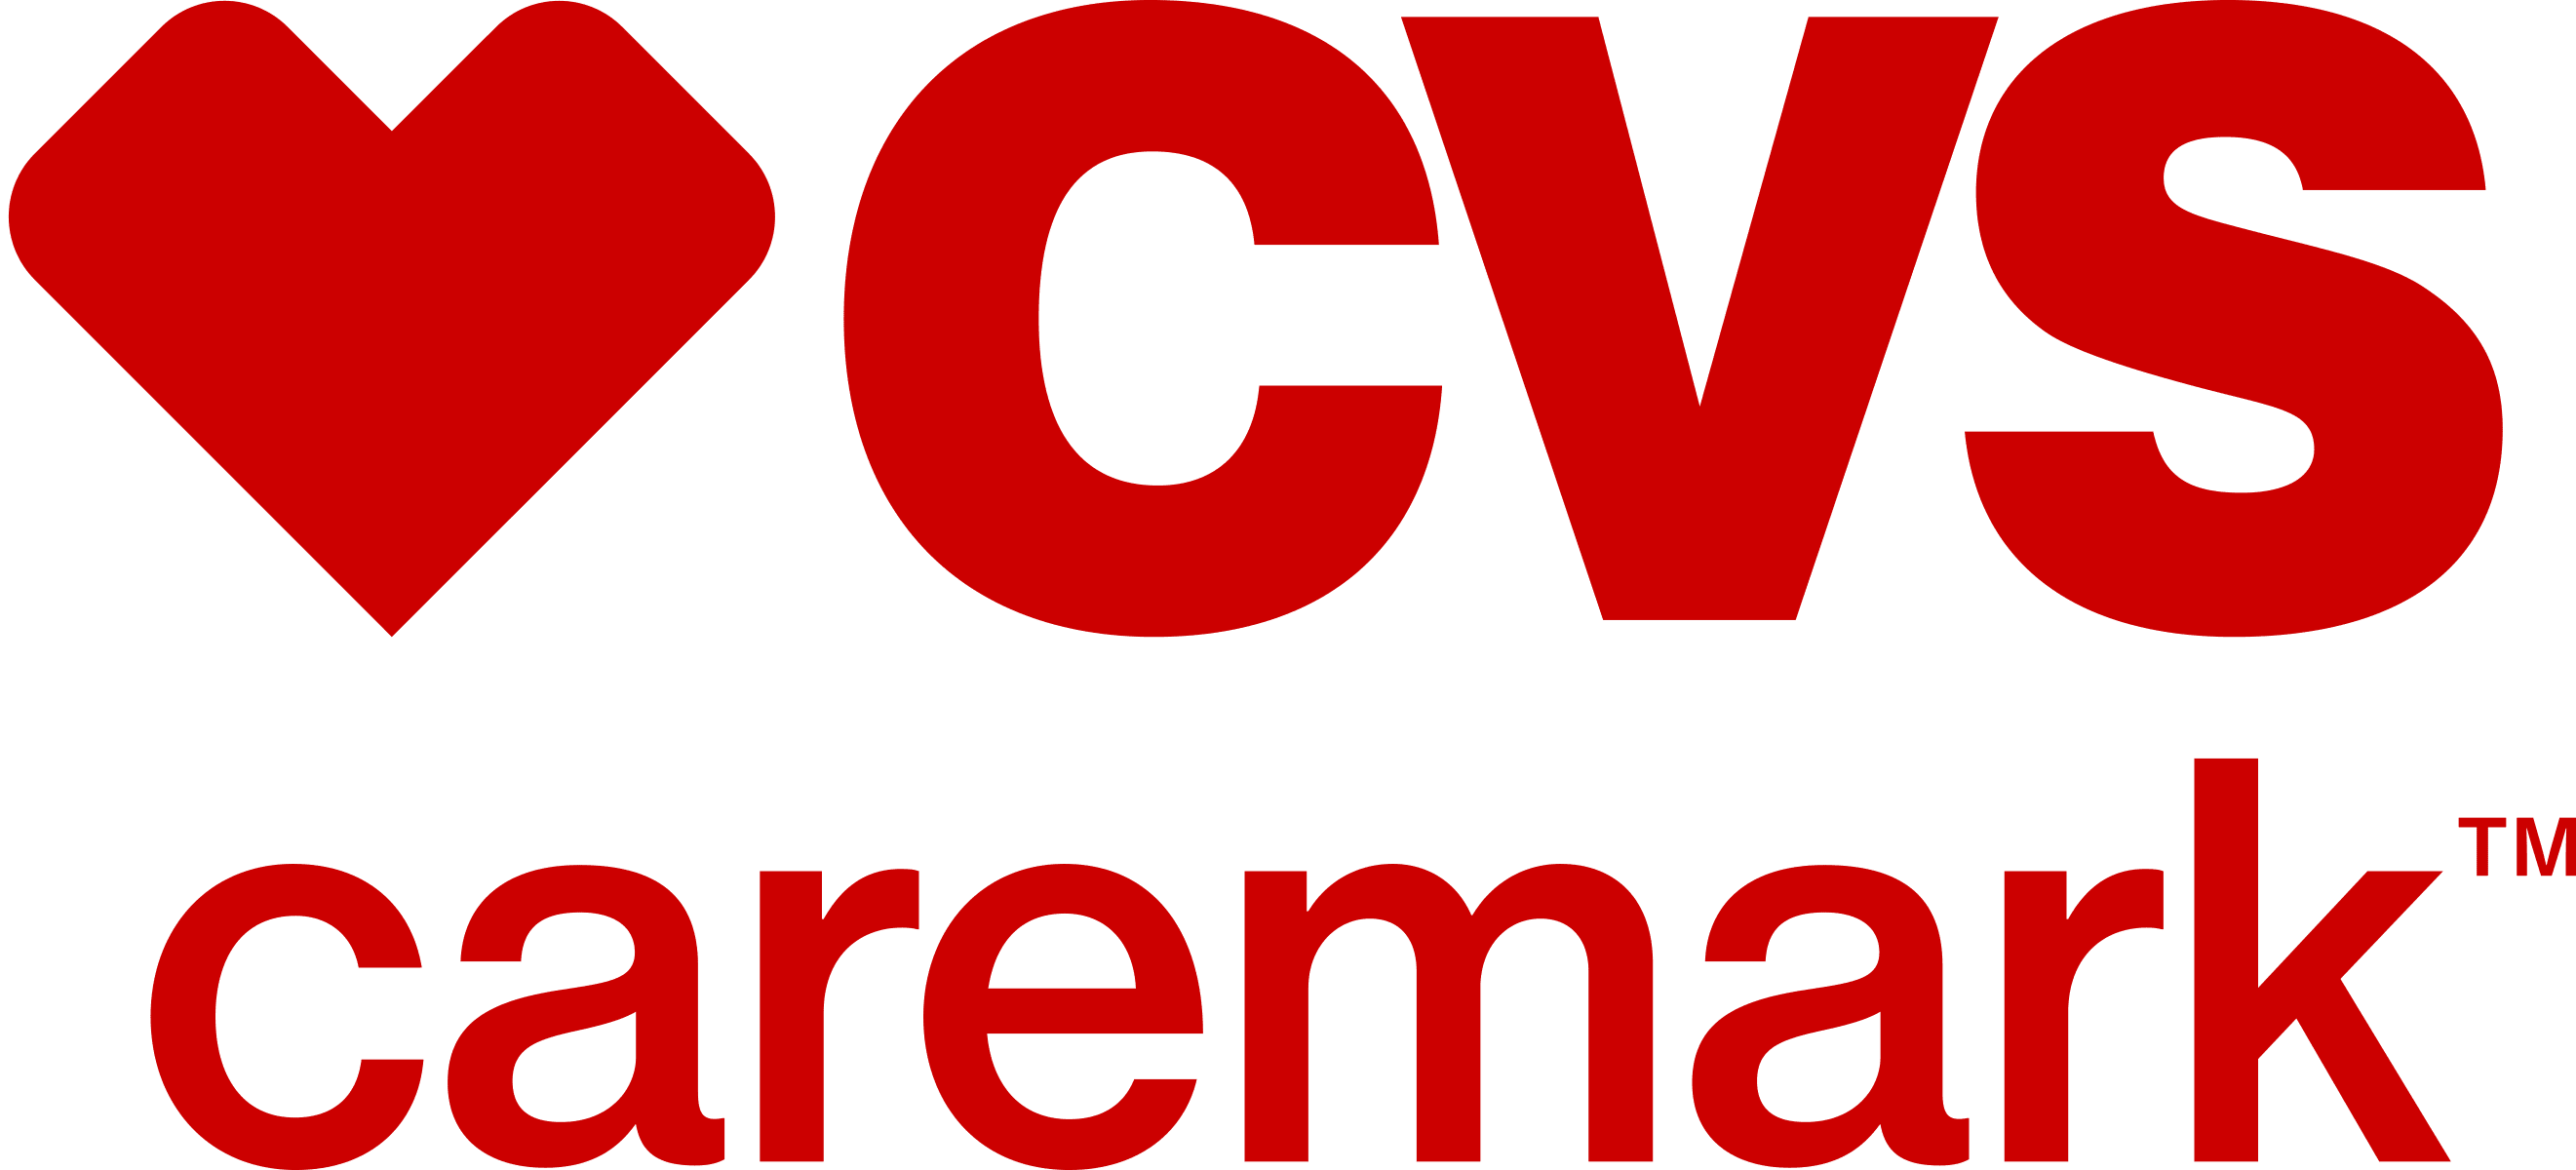 CVS Caremark Case Study Logo